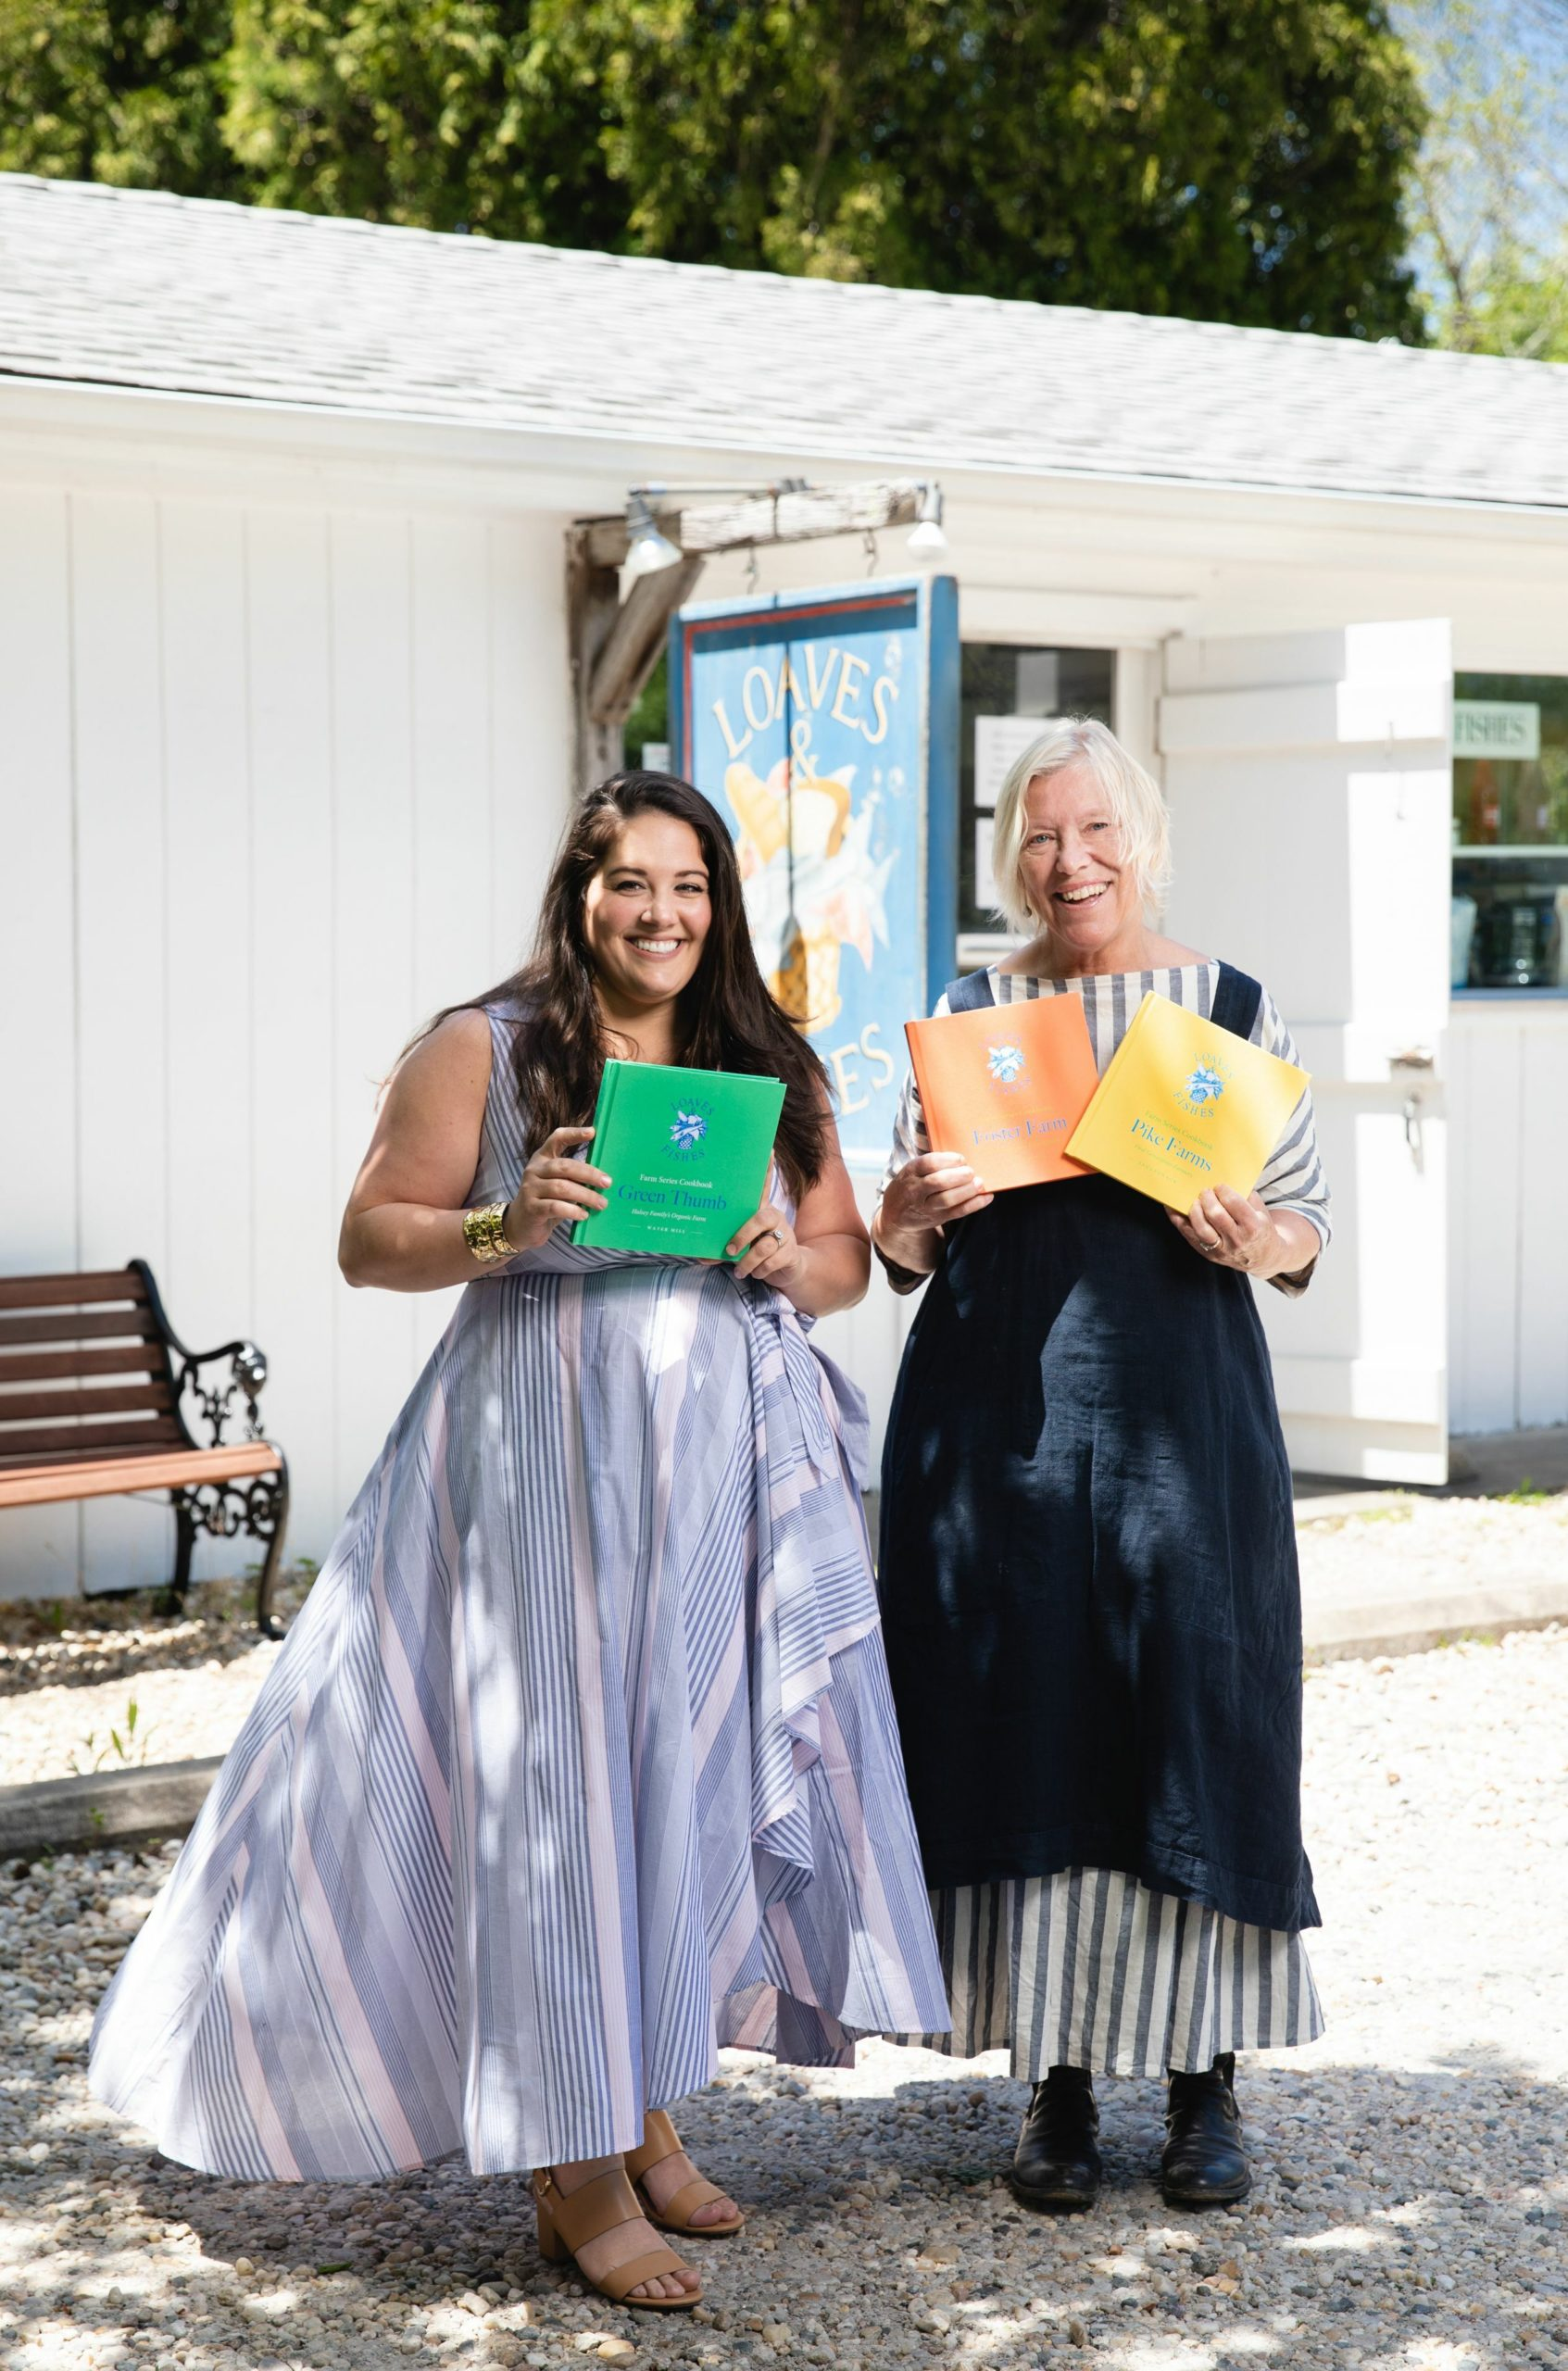 Licia Kassim Householder, left, and Sybille van Kempen with the first three Farm Series cookbooks.